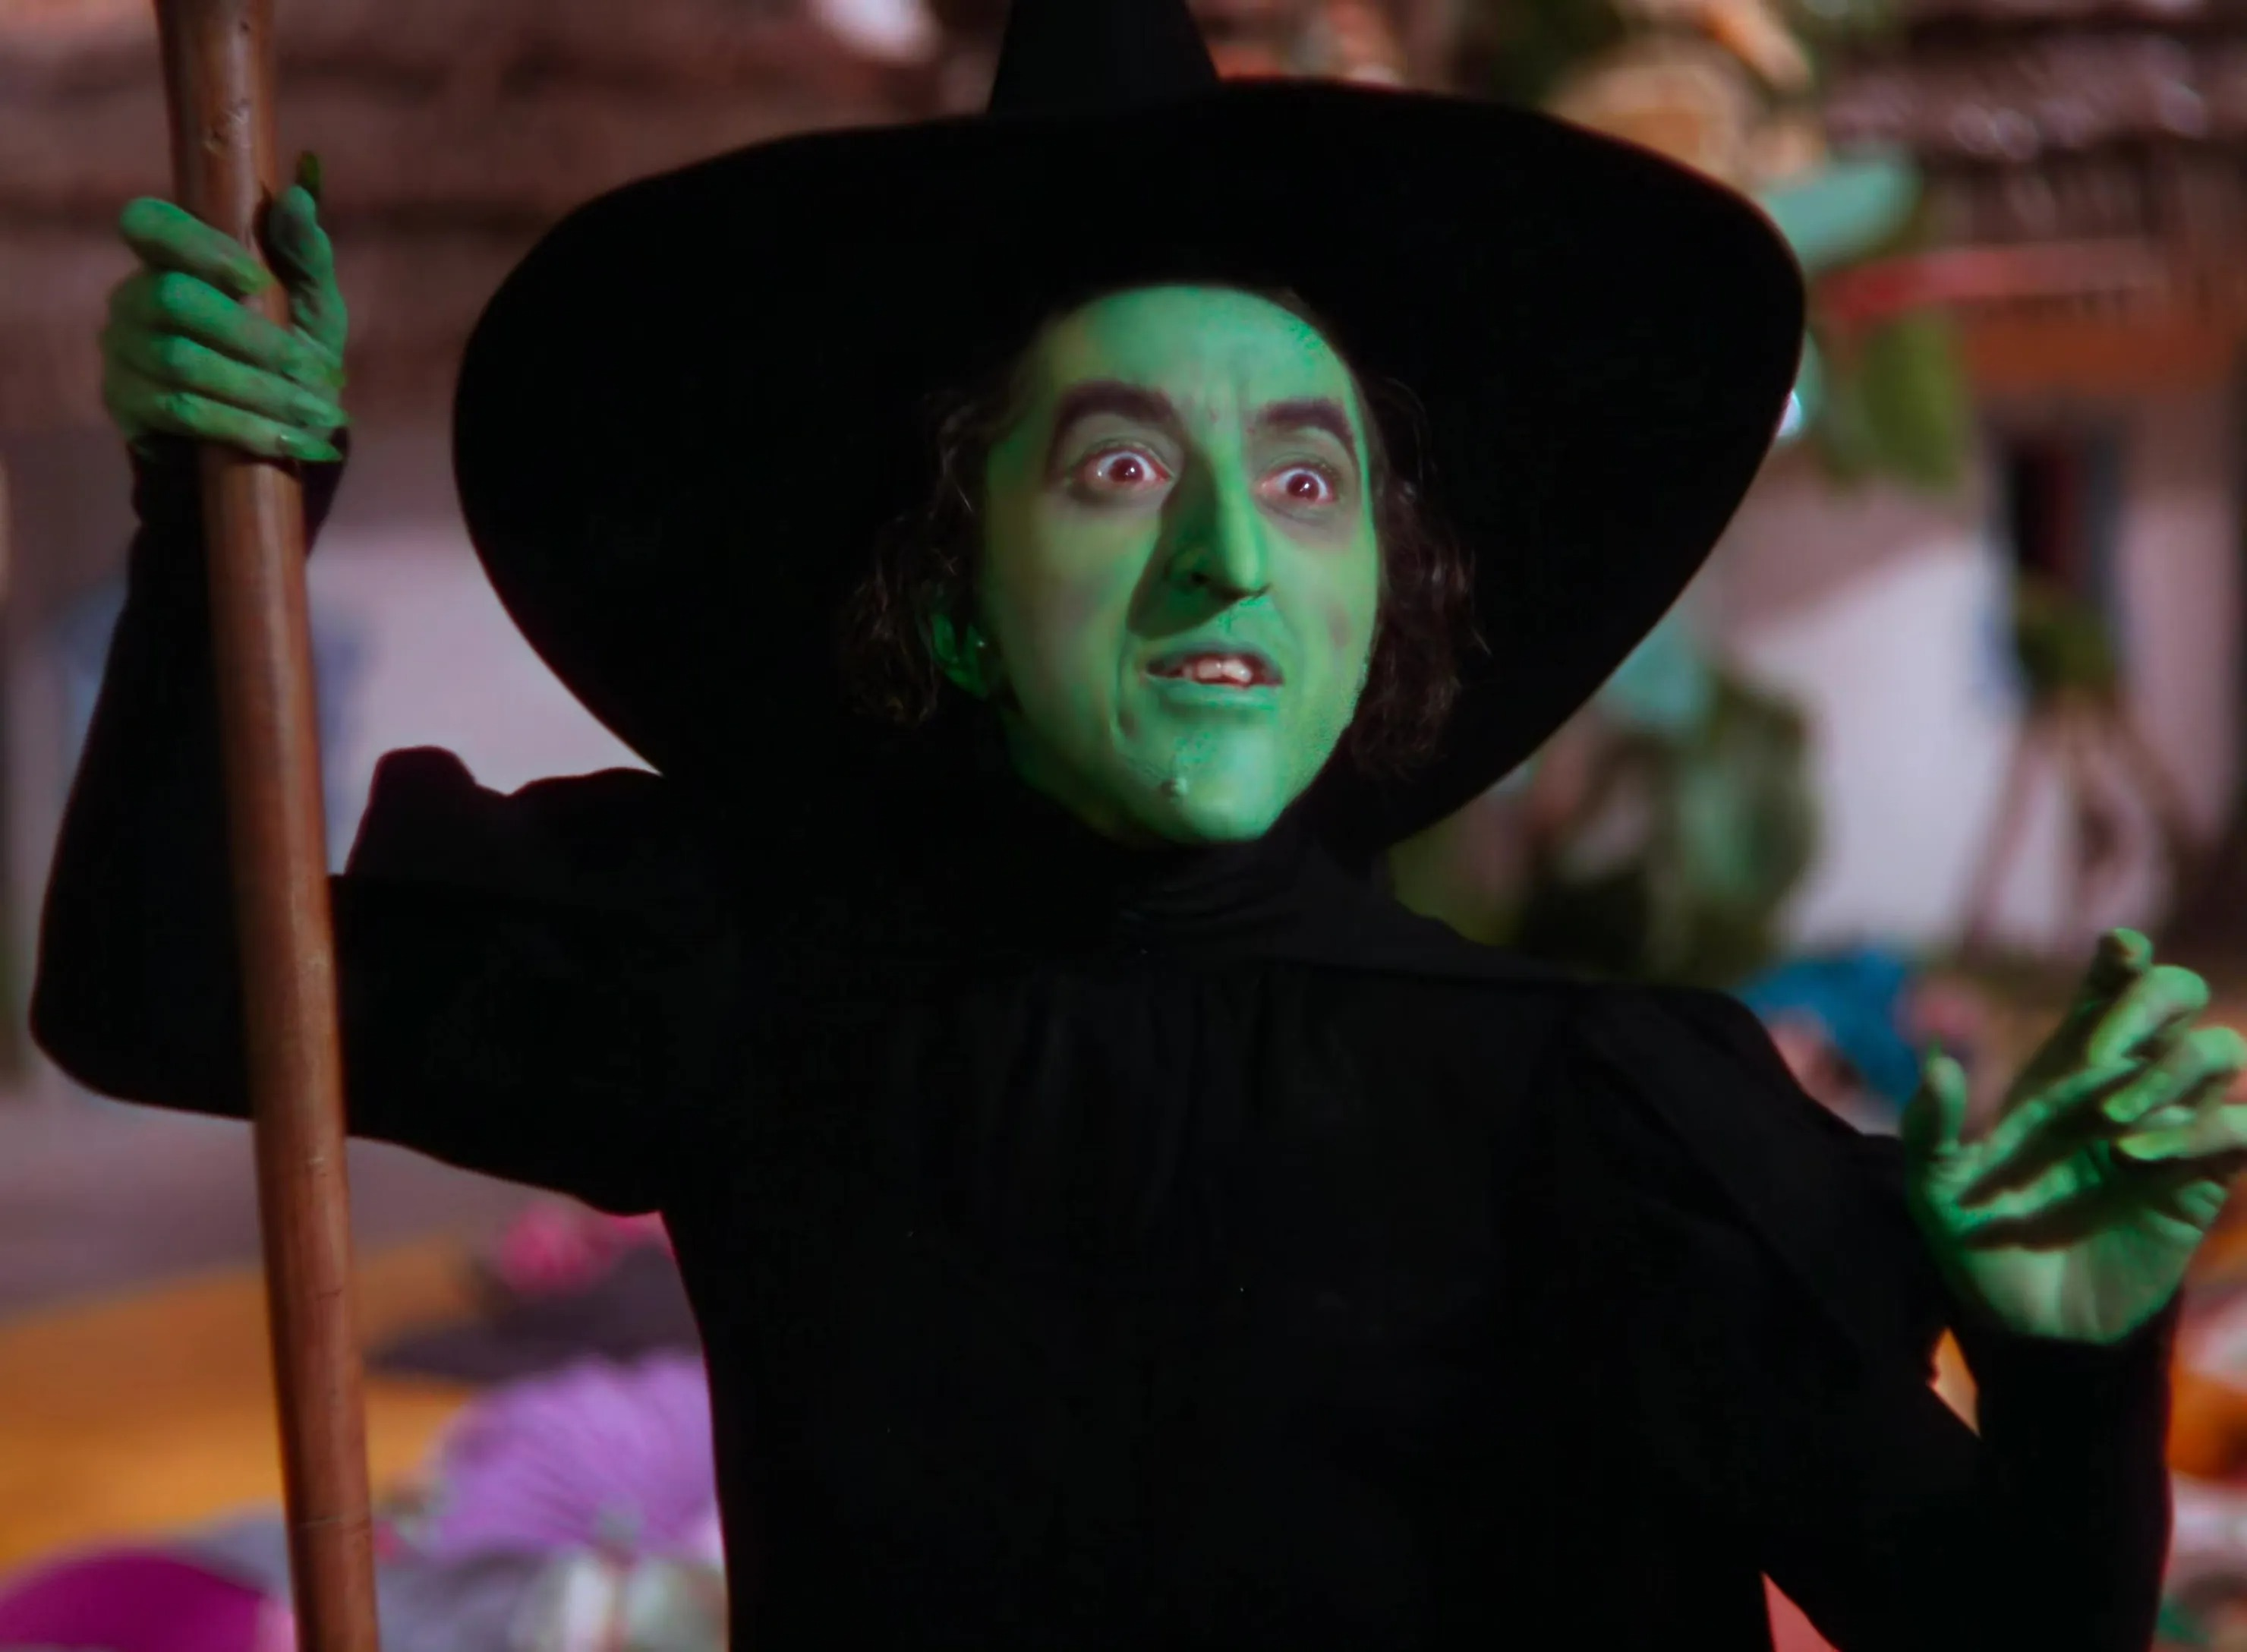 The Wicked Witch of the West (1939 film) - Oz Wiki - The ...